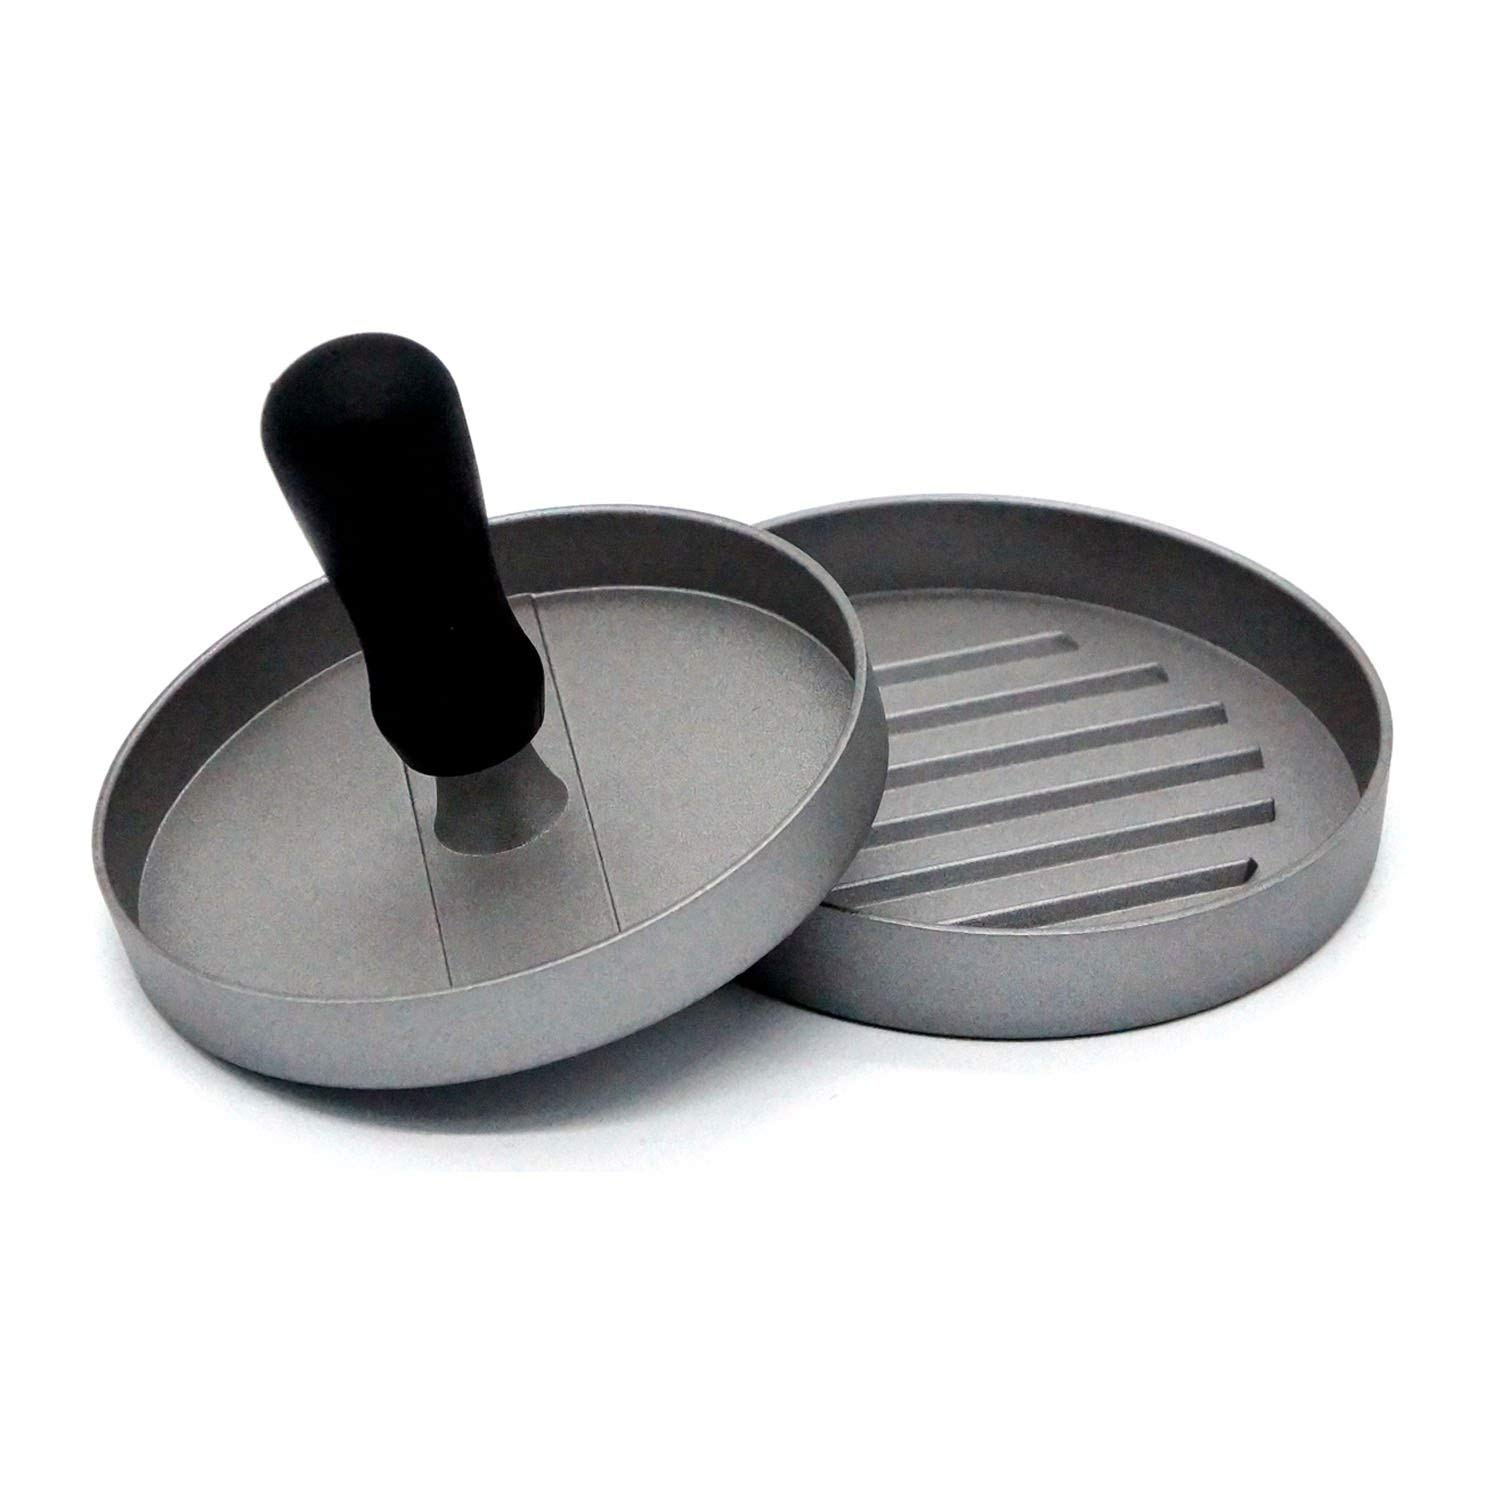 "Youran Burger Press-Hamburger Press/Hamburger Patty Maker for Stuffed Burgers, Grilling Accessories for DIY Stuffed Burger press/5"" stuffed burger press"